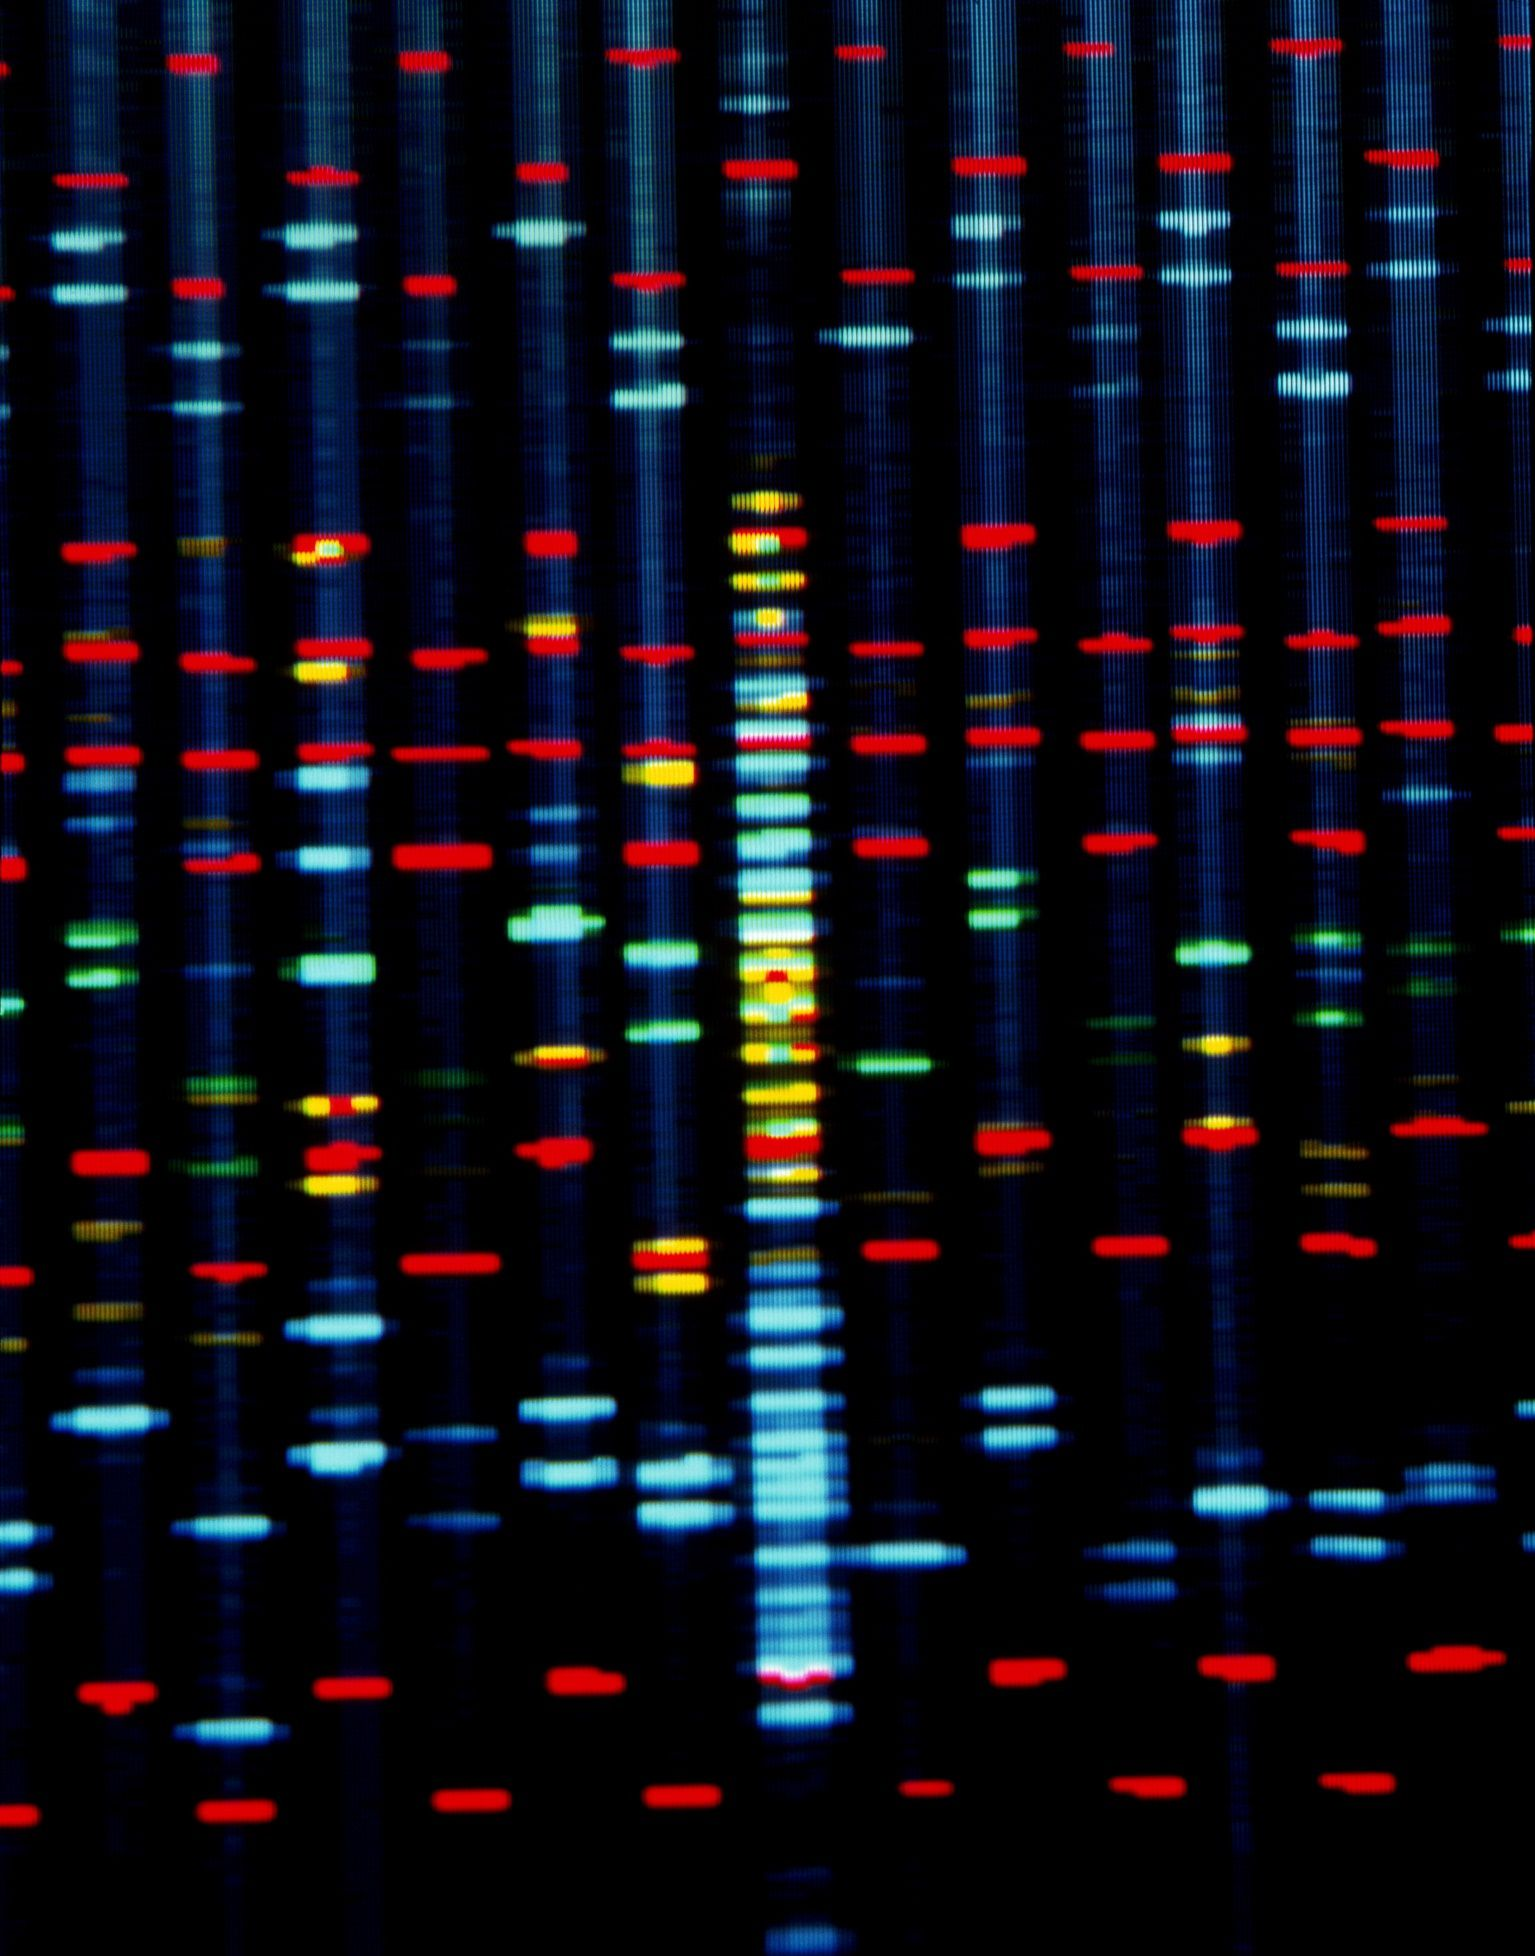 Genetic Testing for Mutations That Cause Cystic Fibrosis